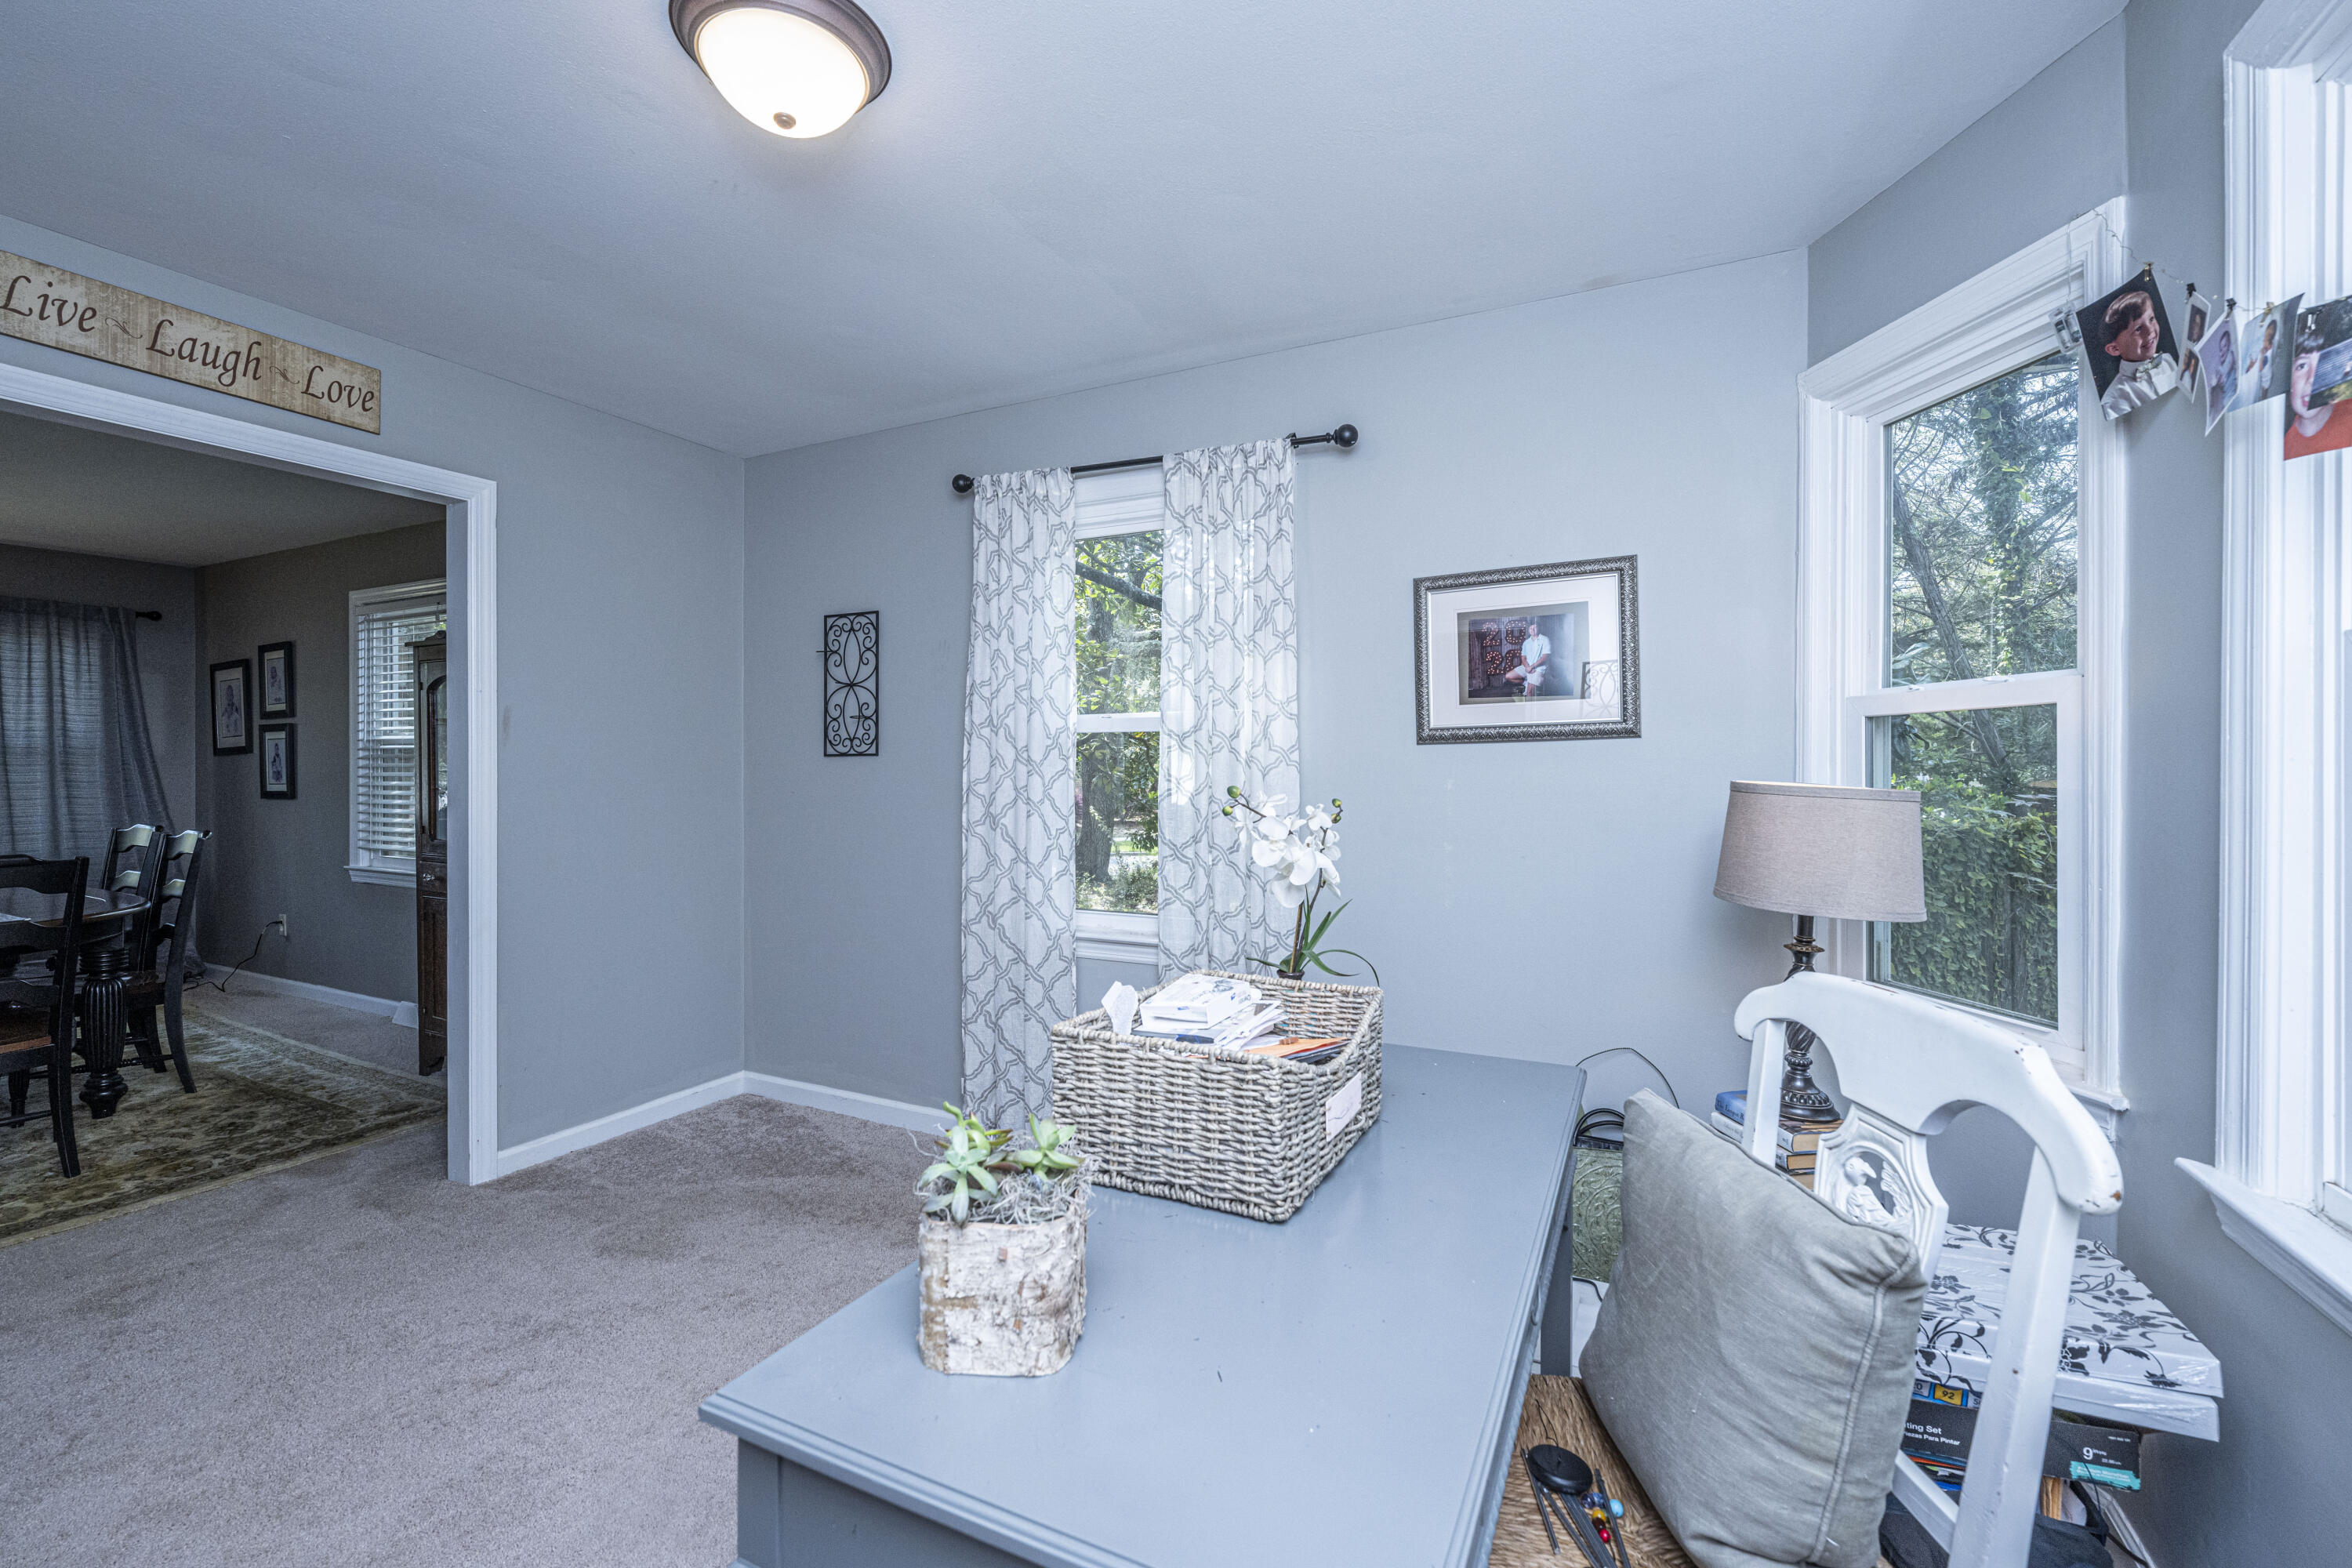 Stiles Point Homes For Sale - 775 Sparrow, Charleston, SC - 18